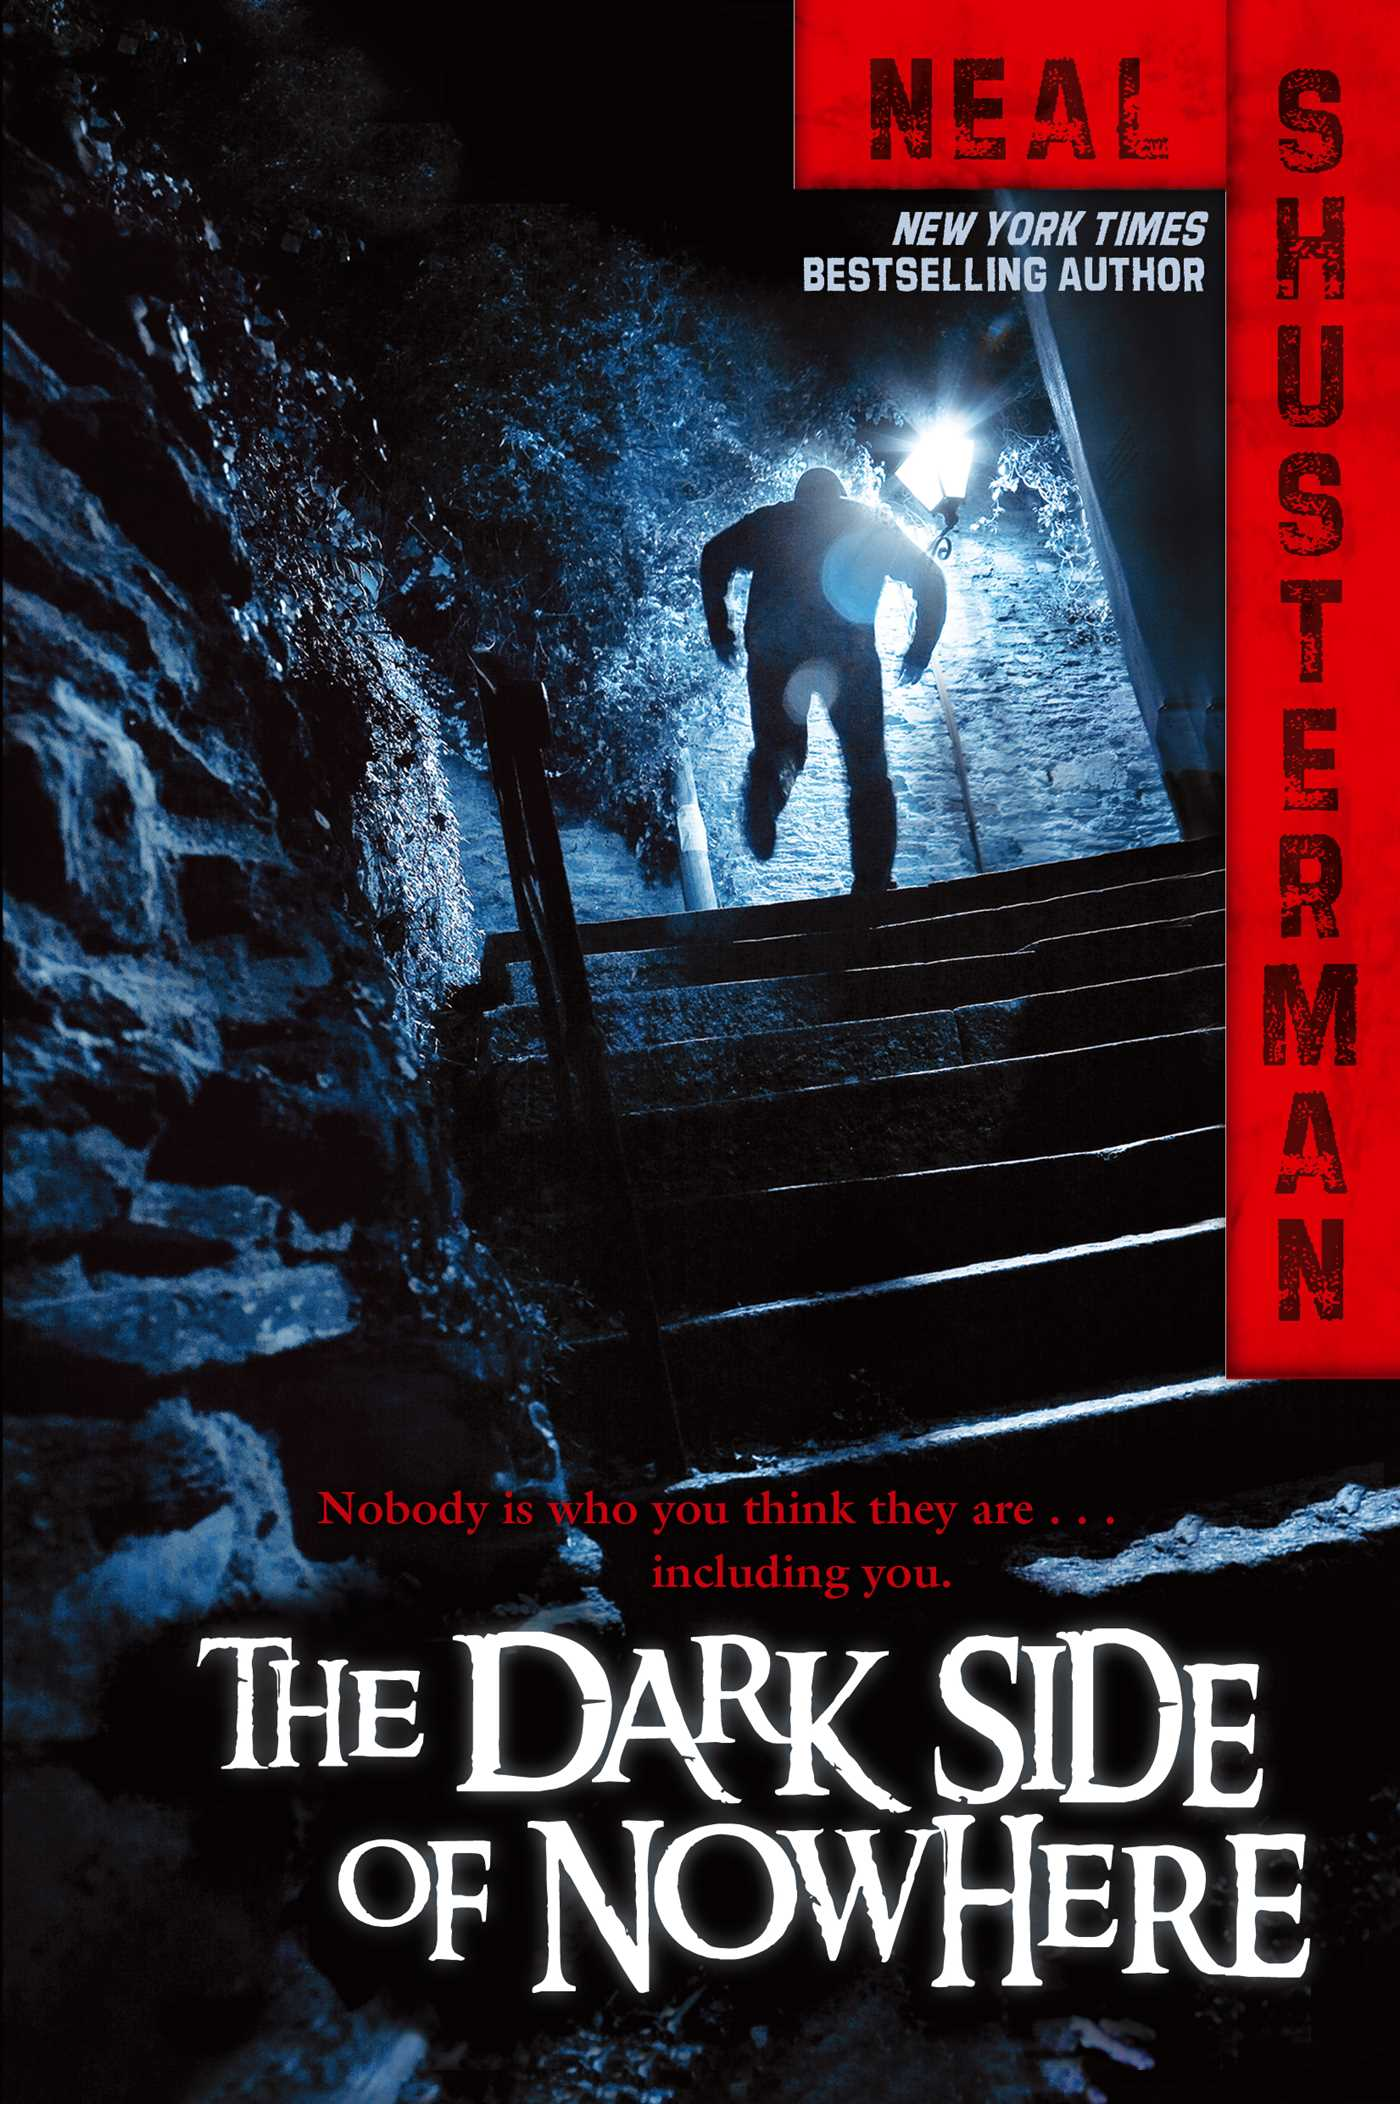 a summary of the dark side of nowhere by neal shusterman